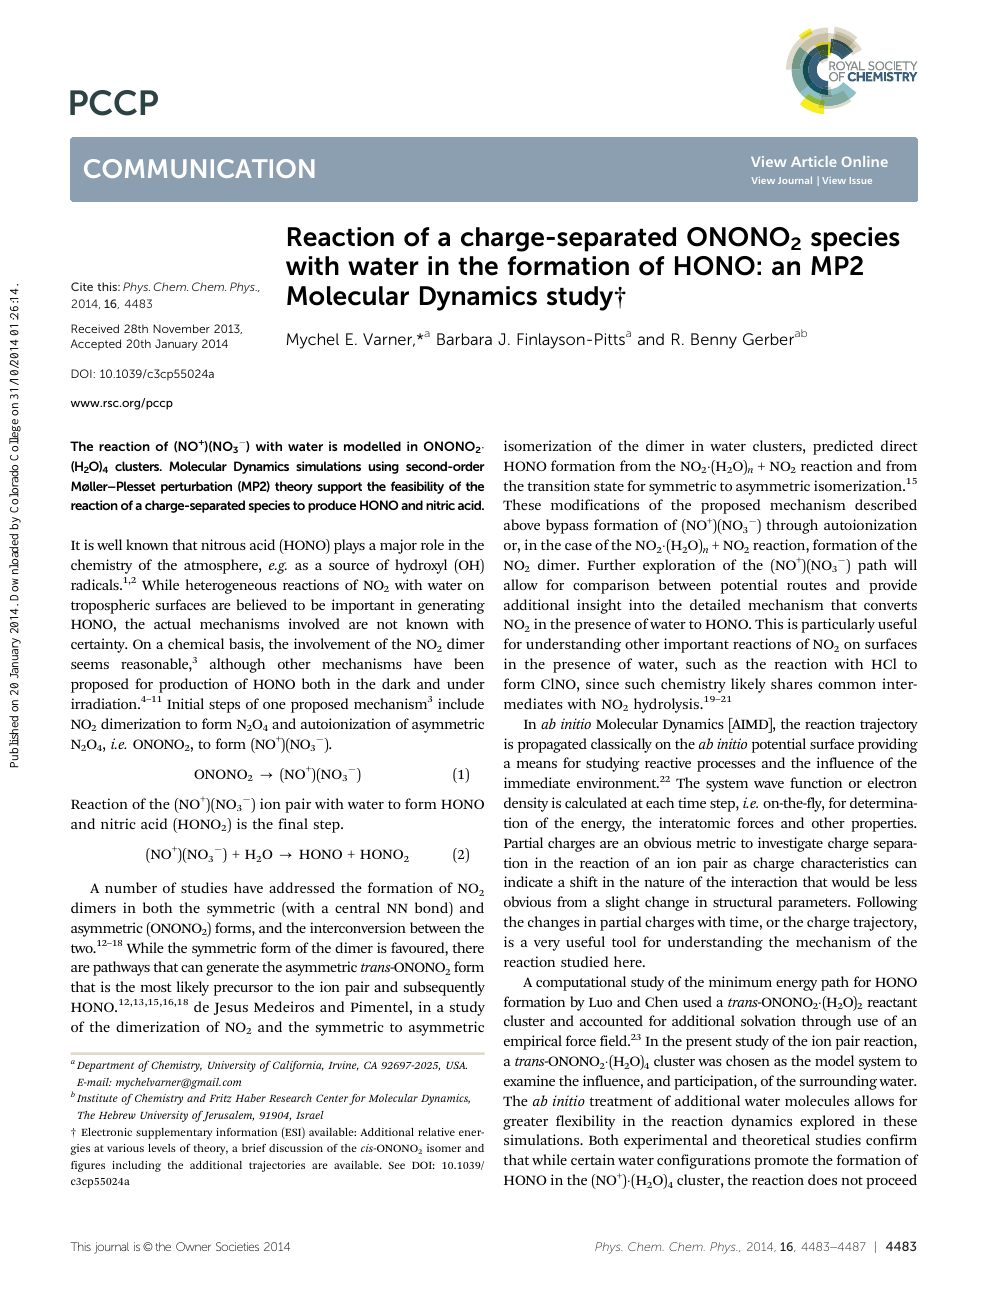 Reaction of a charge-separated ONONO2 species with water in